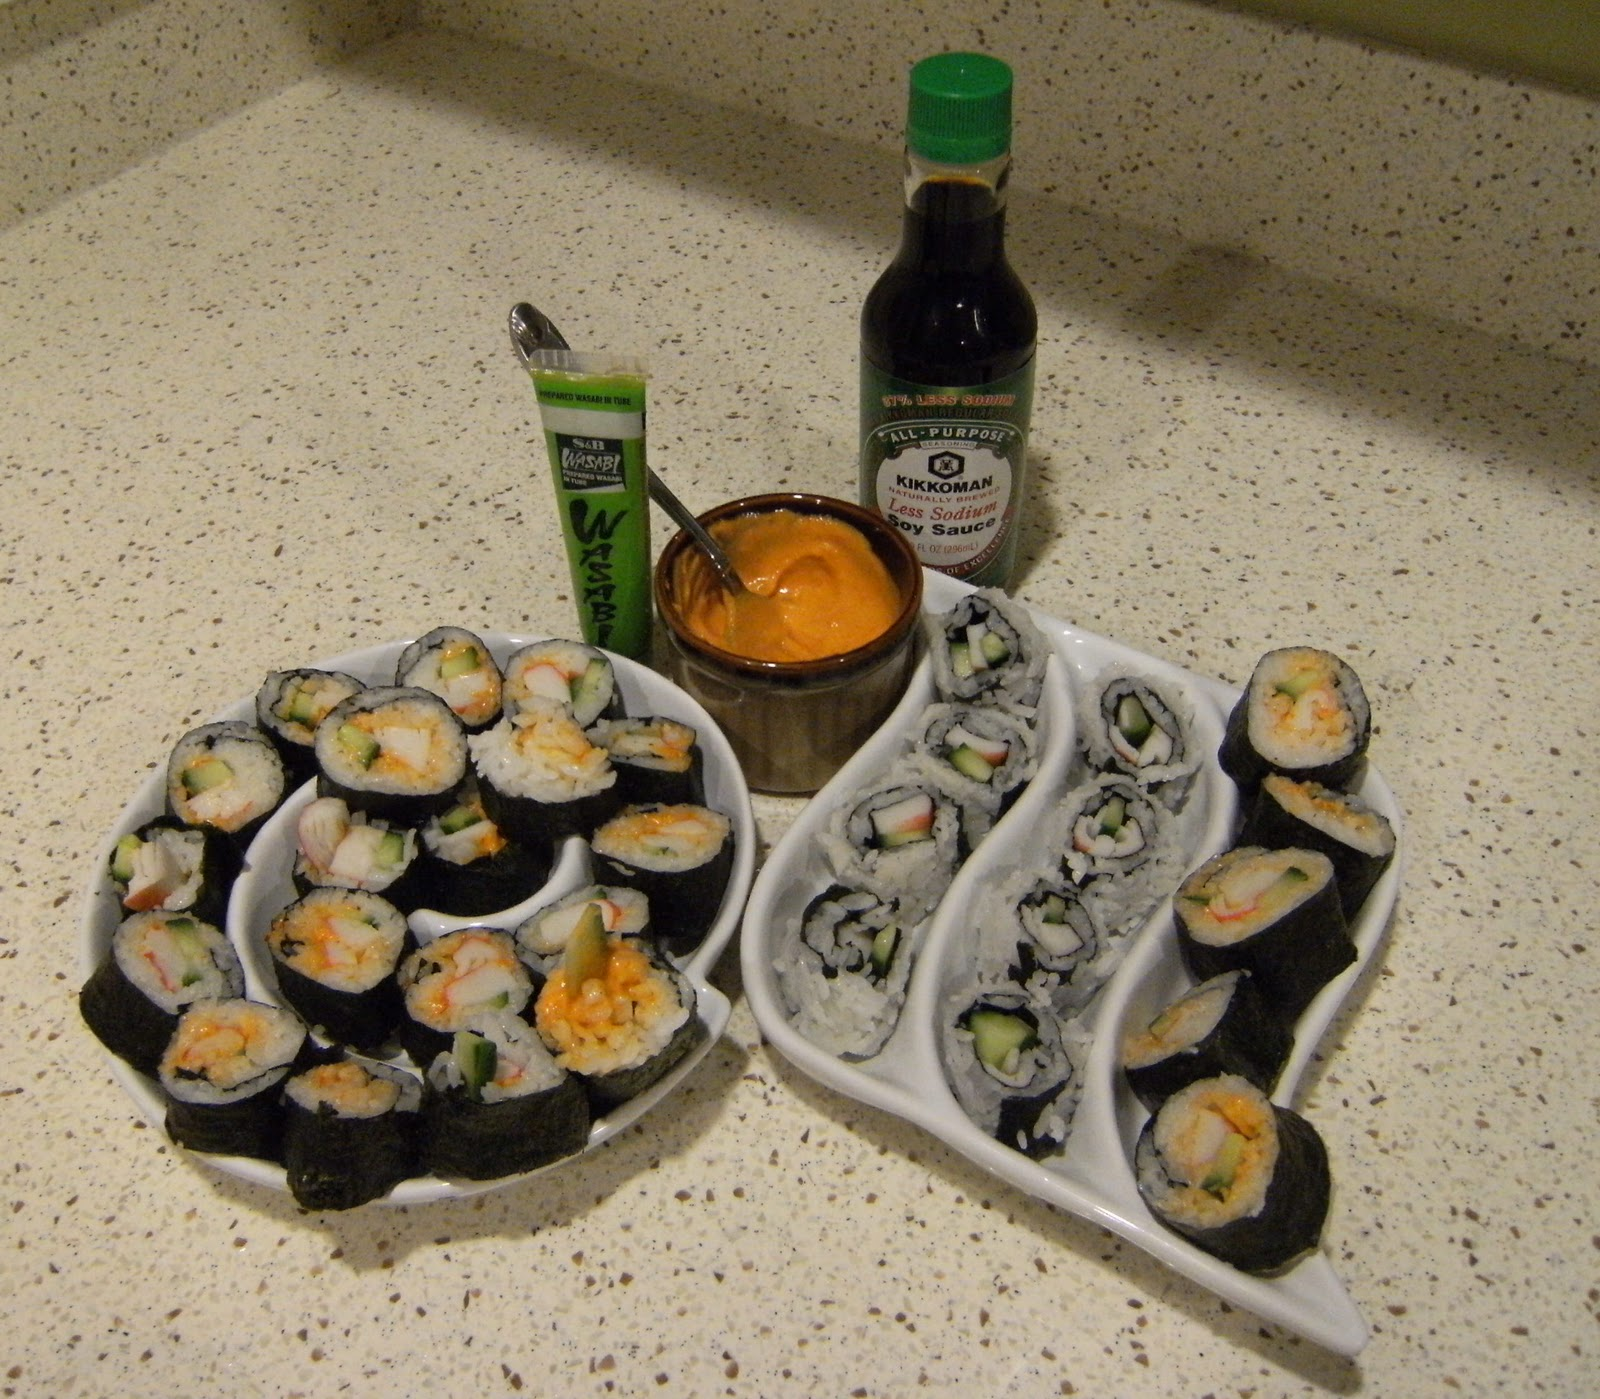 Projects Around the House: Make Your Own Sushi